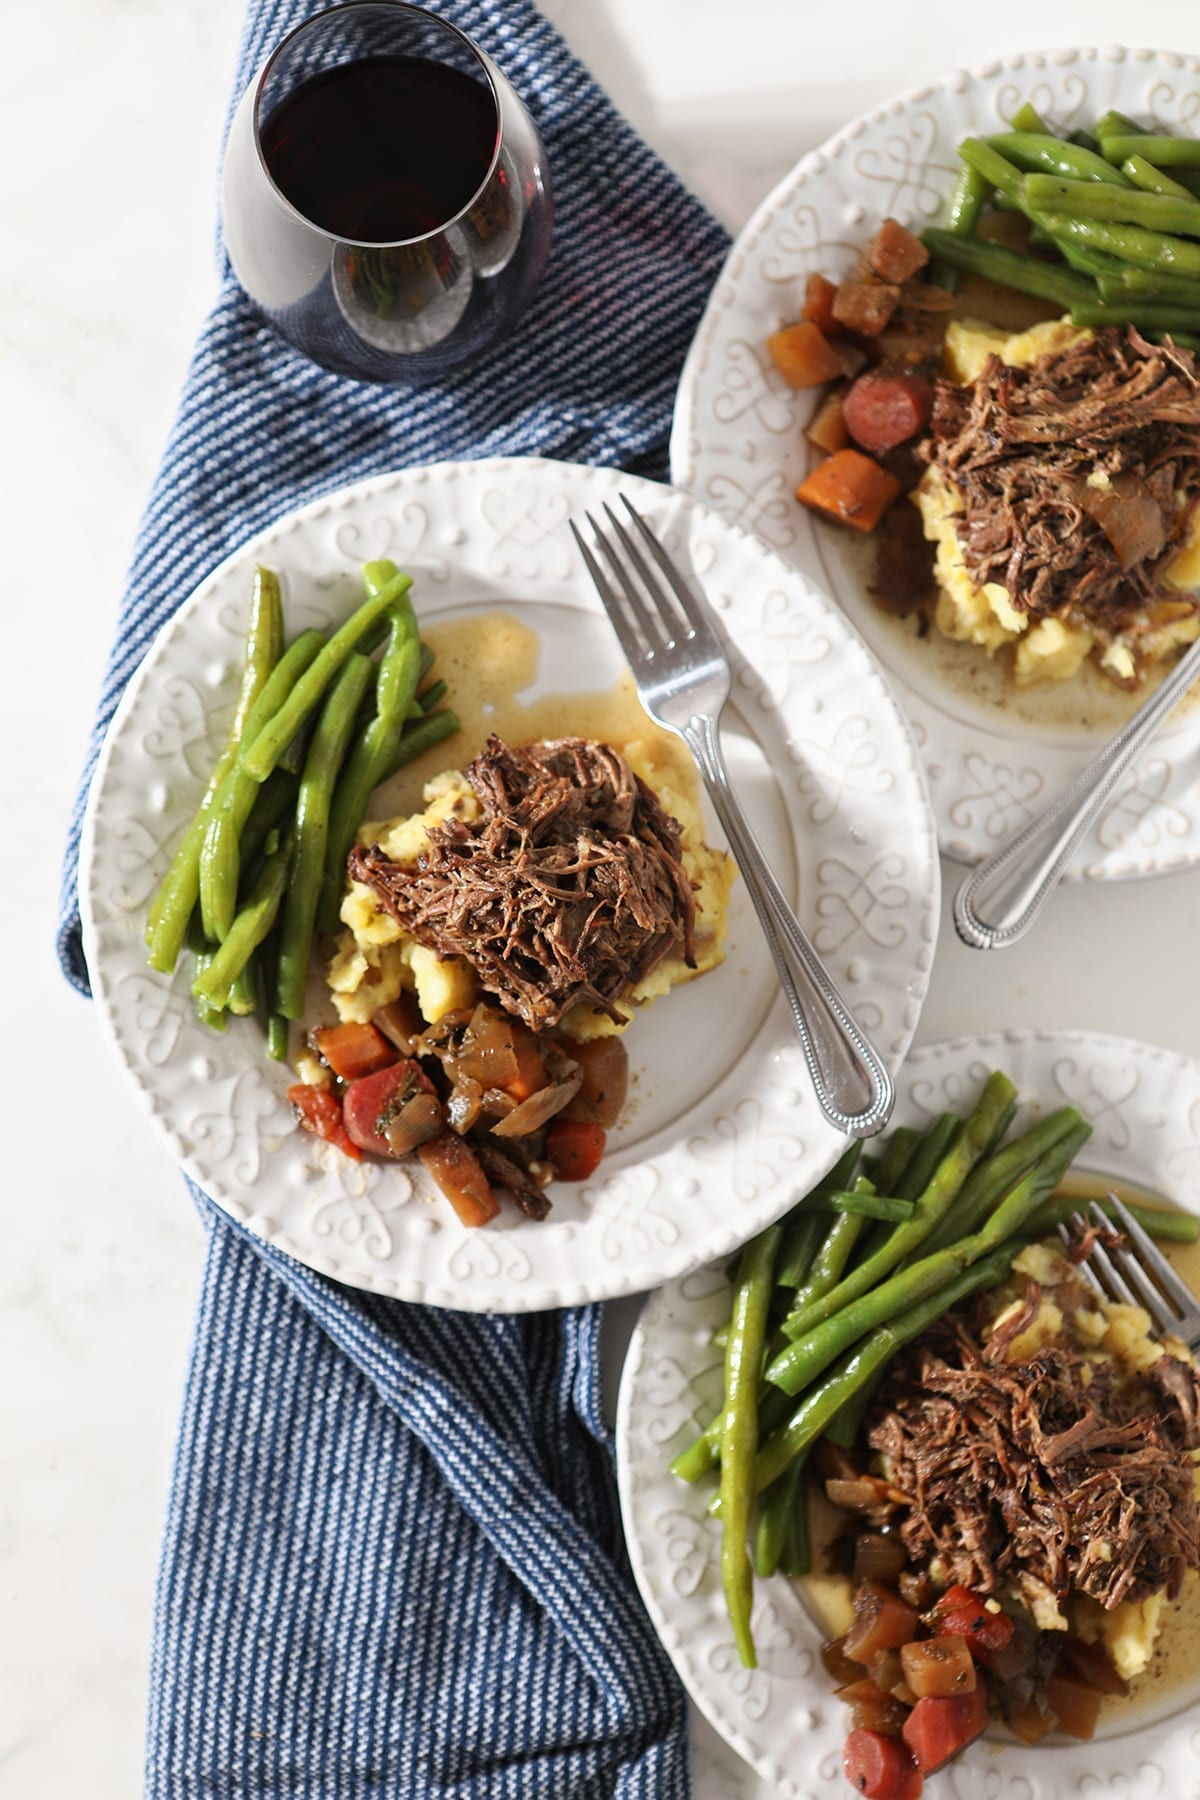 Three plates hold shredded slow cooker pot roast with mashed potatoes, steamed green beans and slow cooked veggies from above